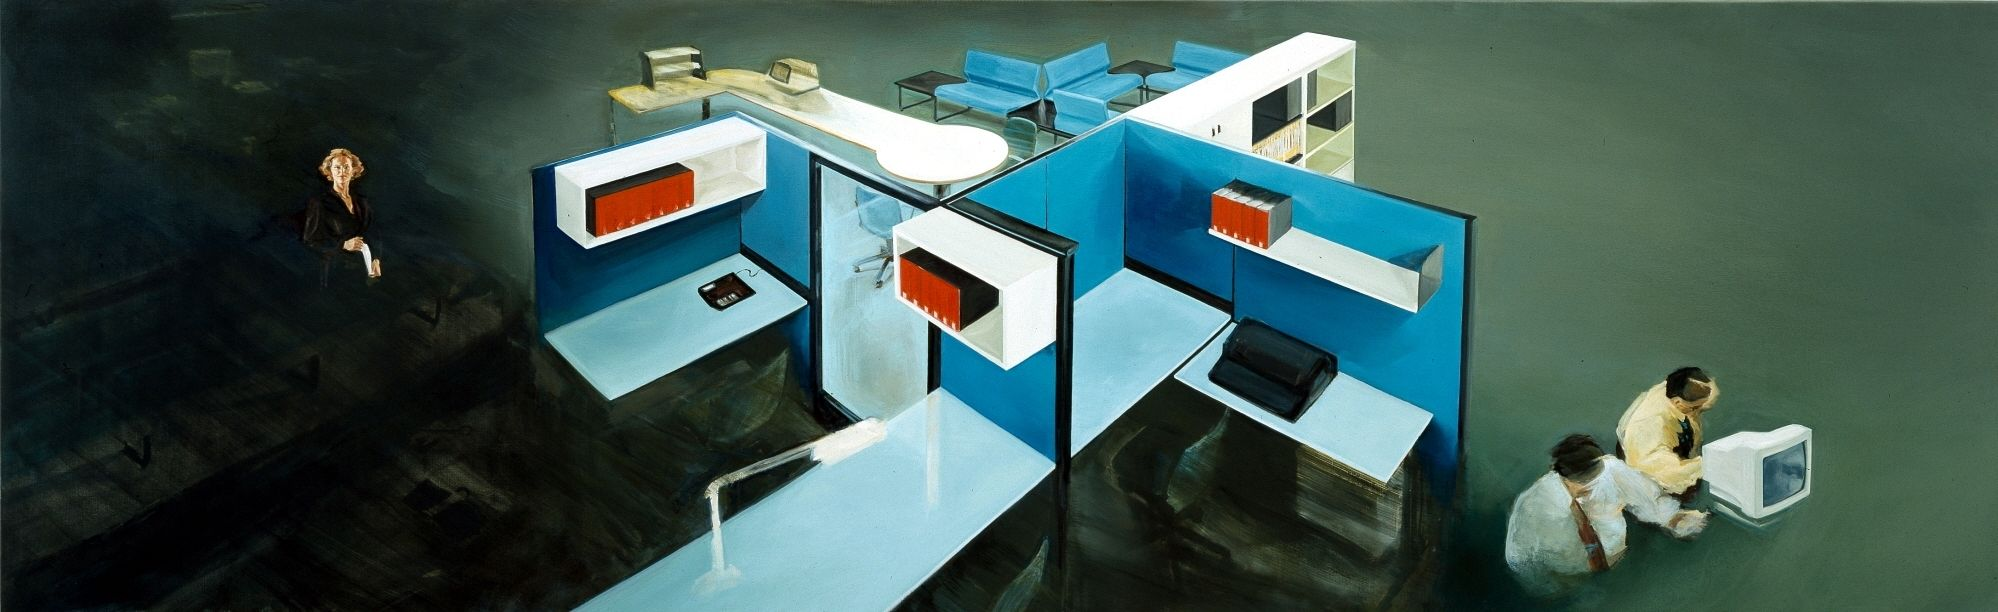 Fragment, 1995, oil on linen, 140 x 450cm